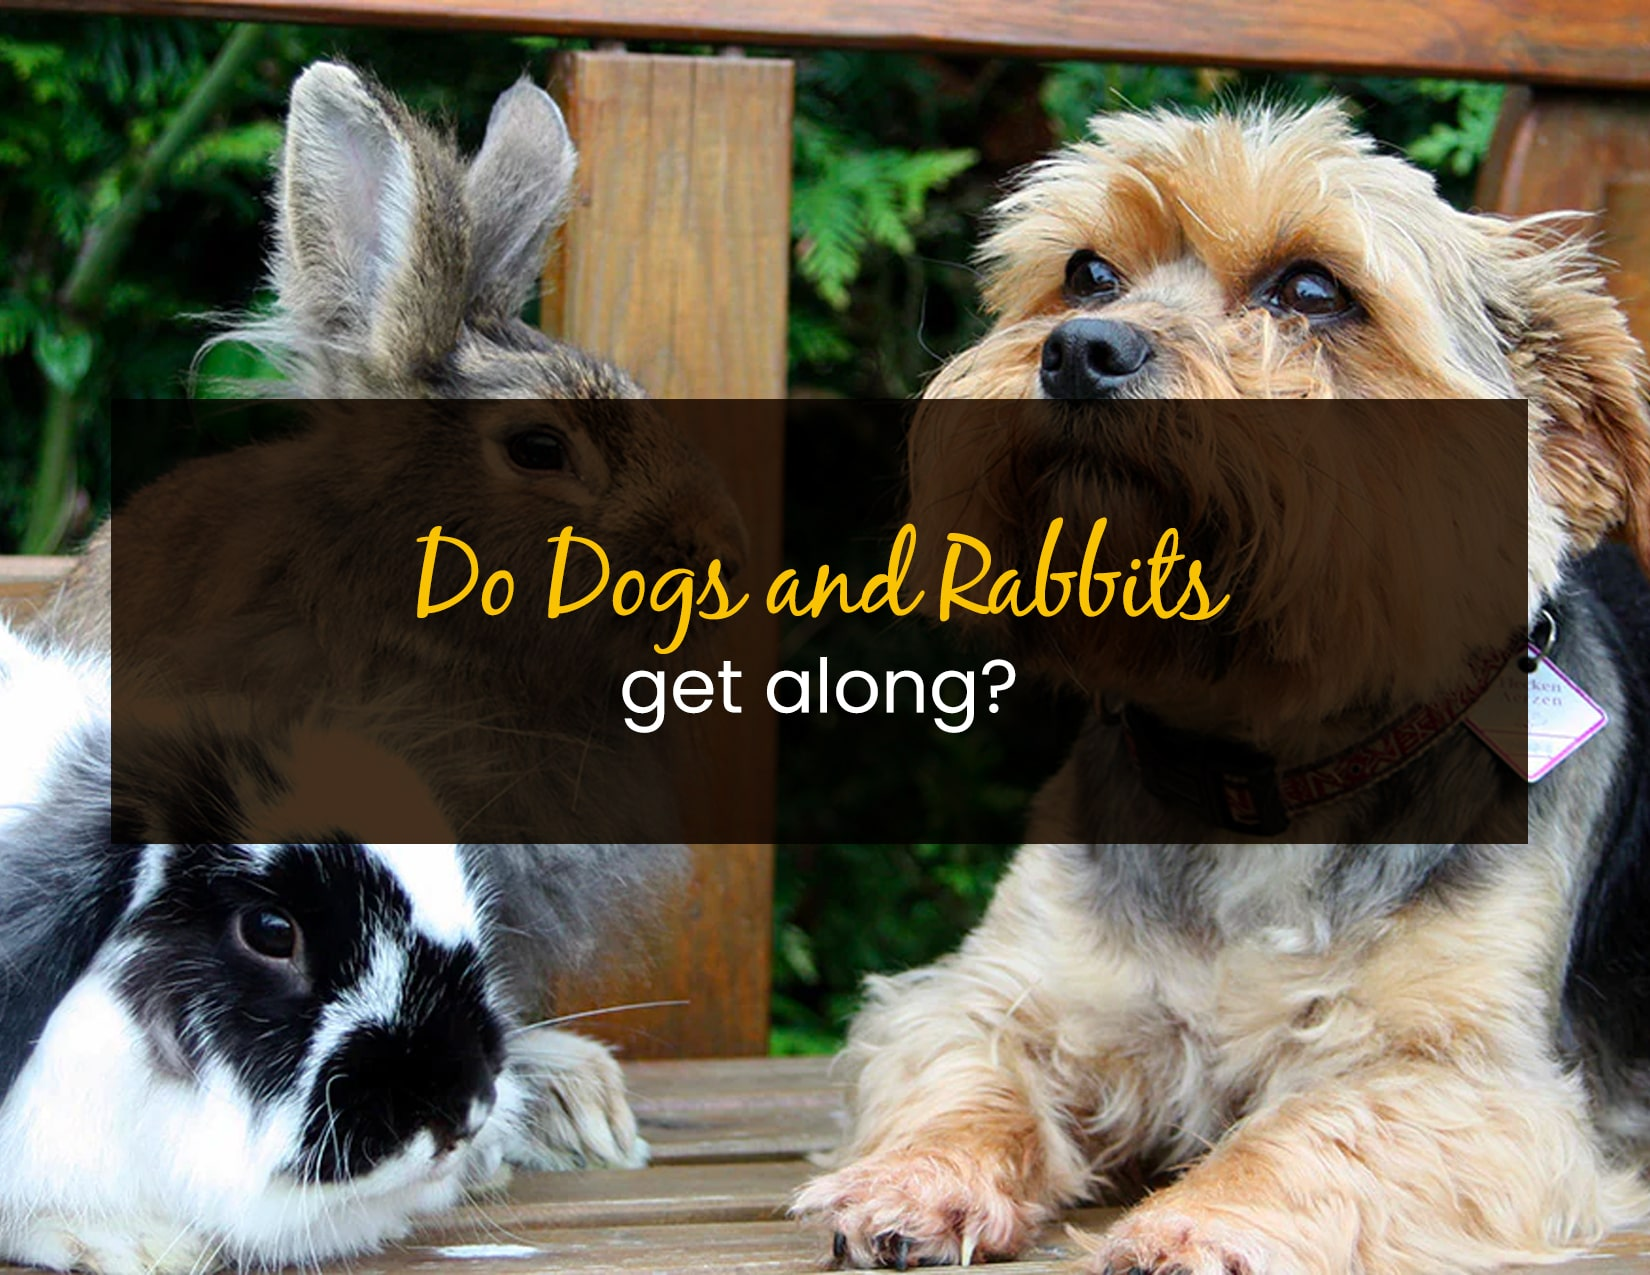 Do dogs and rabbits get along - WP